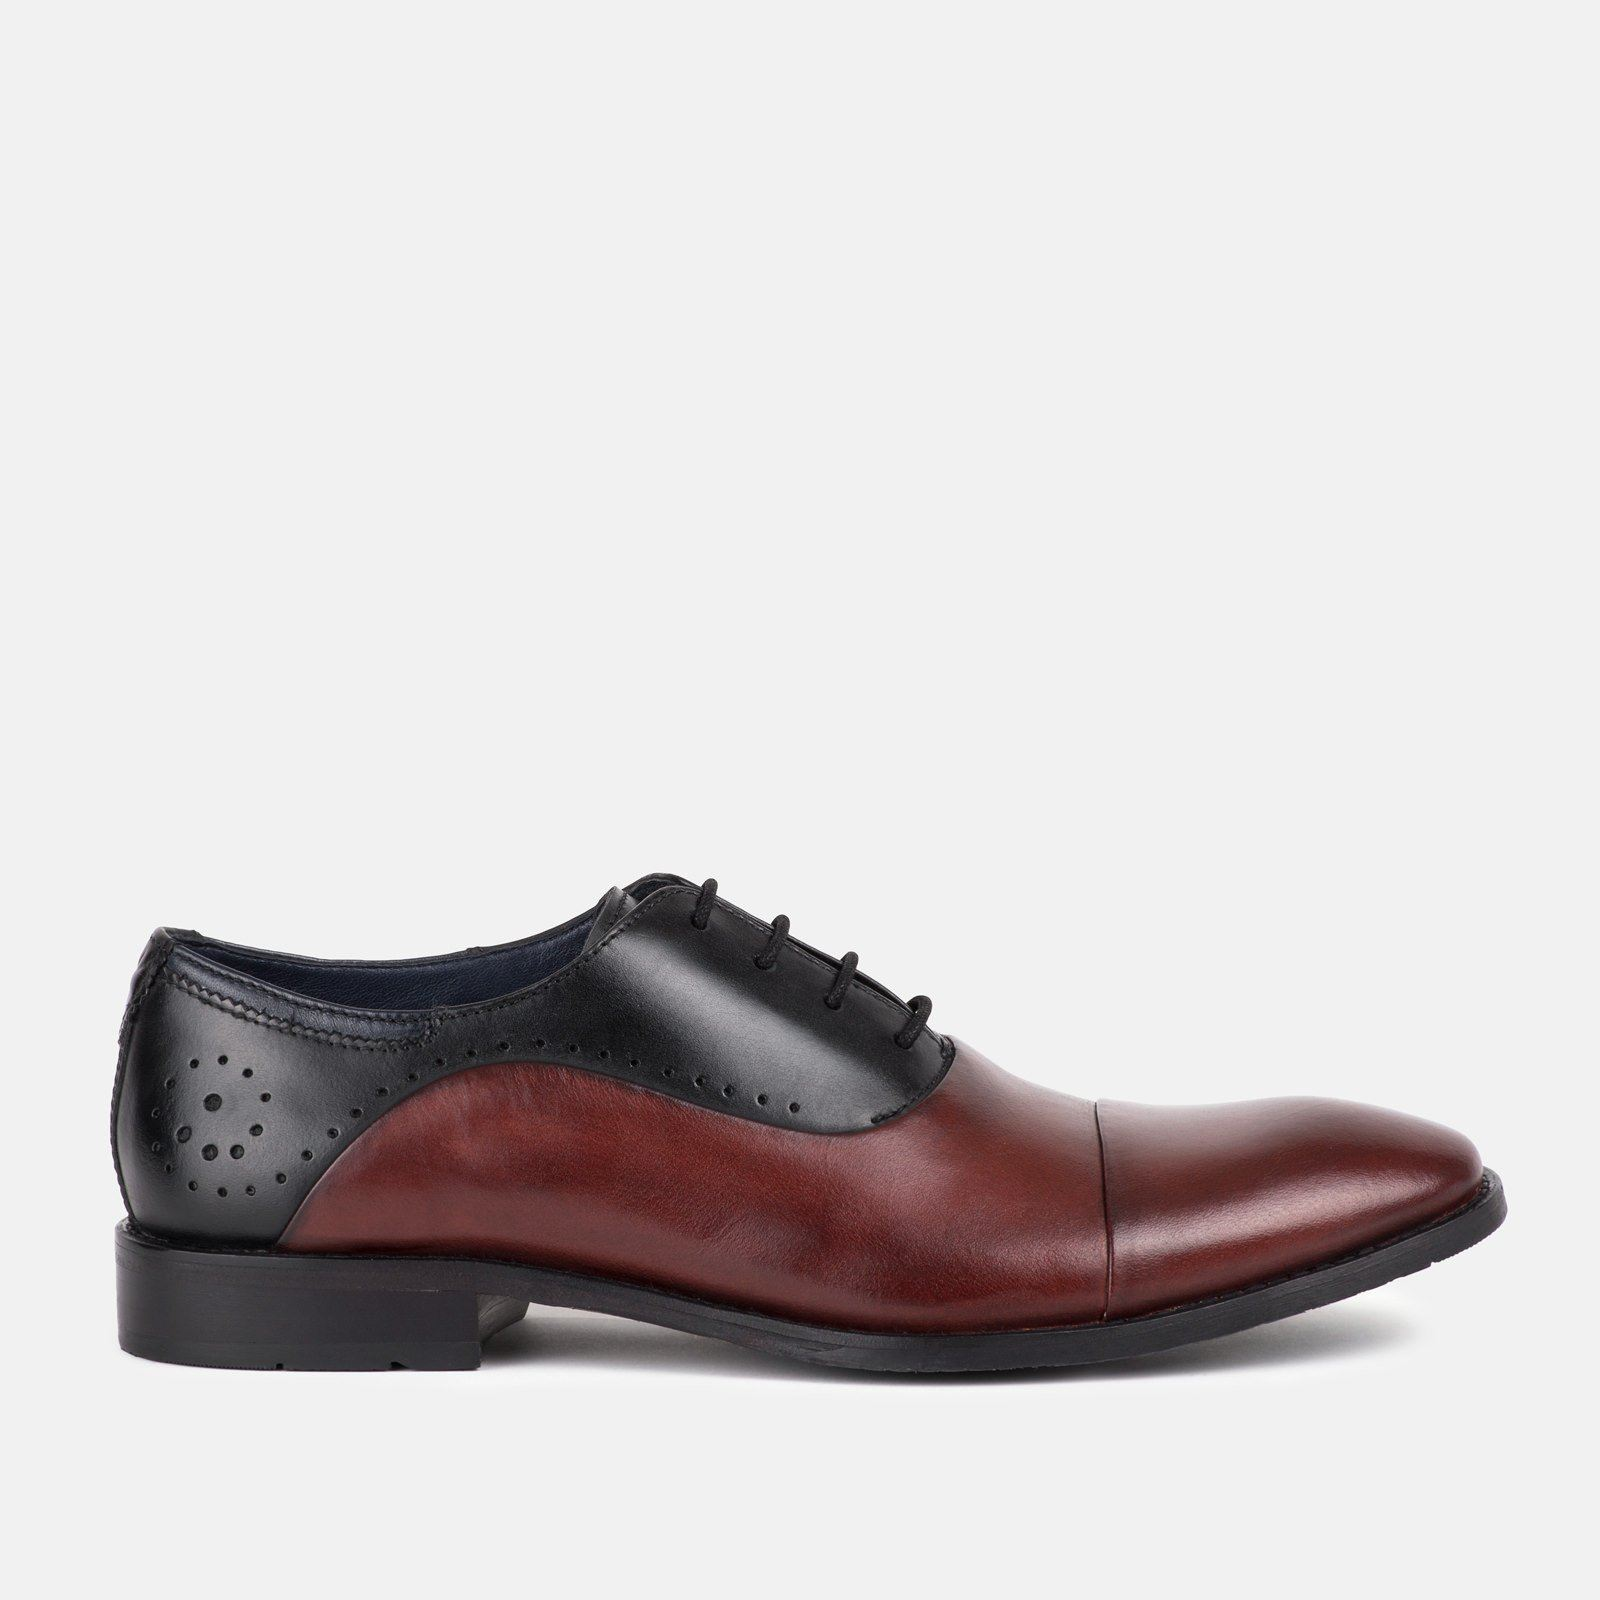 Goodwin Smith HUTTON schwarz BORDO AW18 Mens schuhe